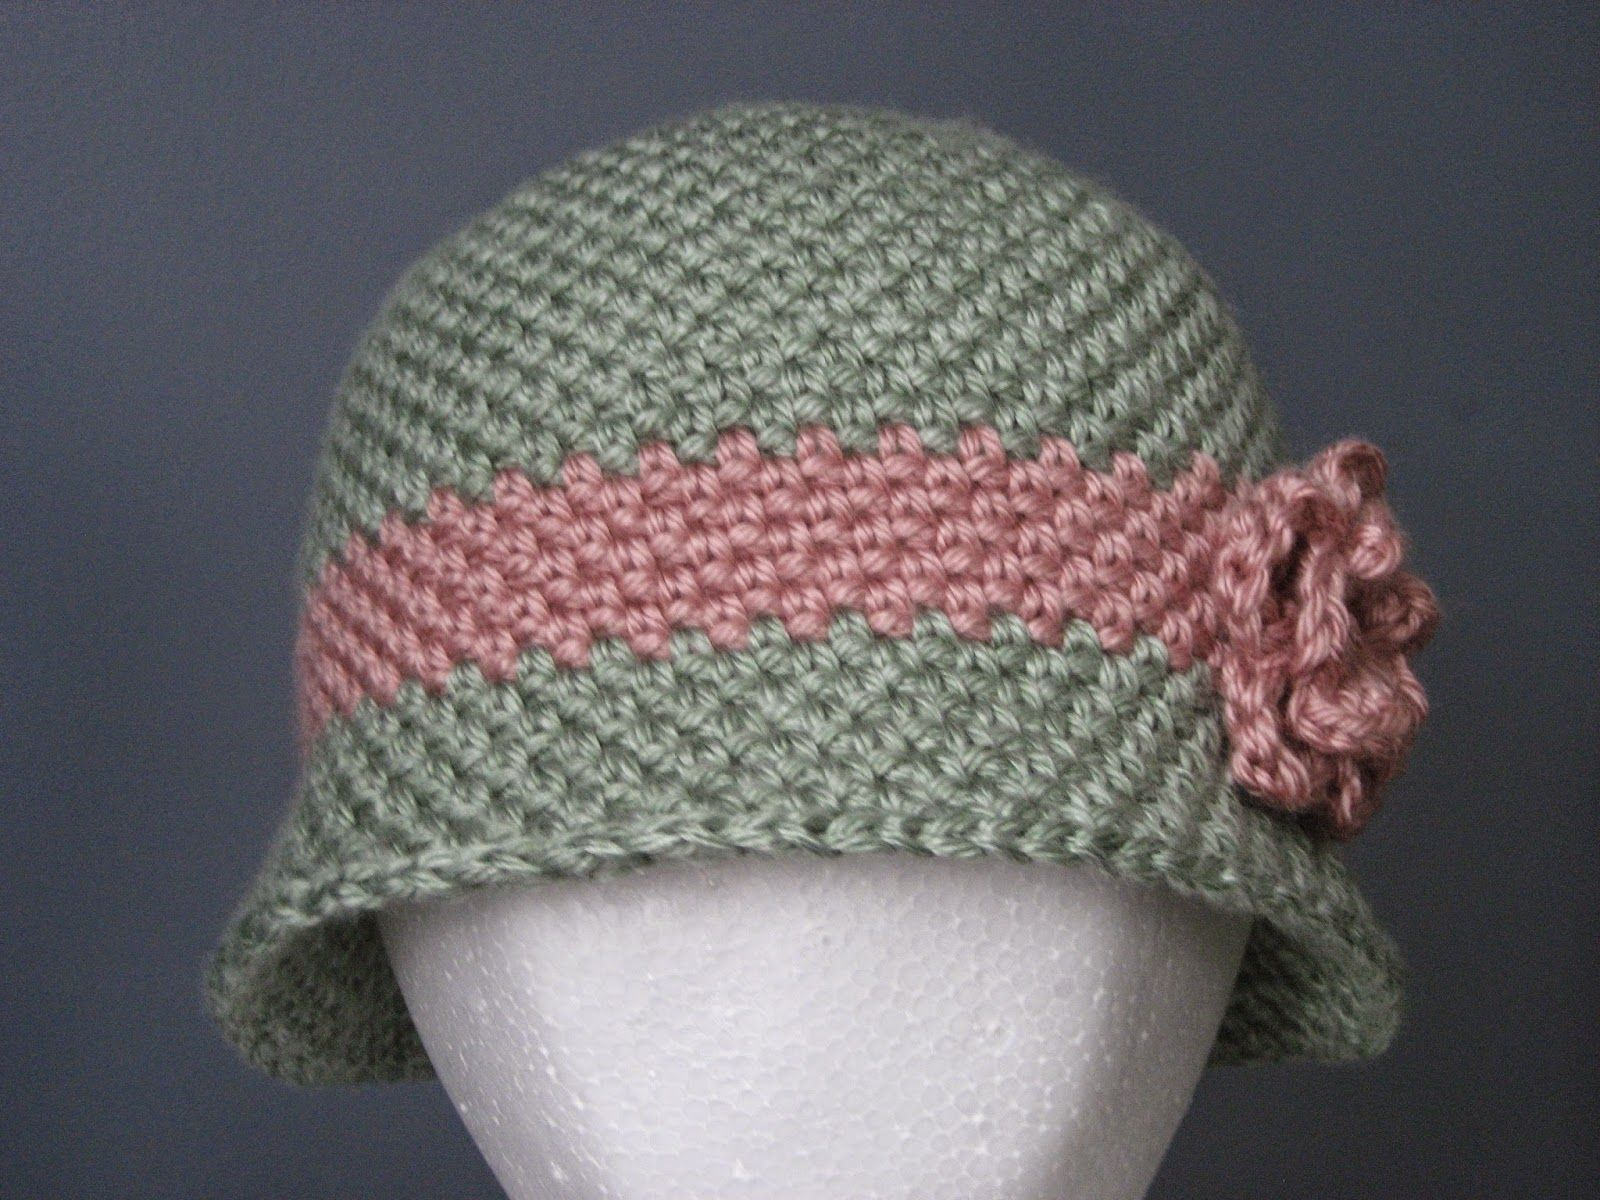 Yarning for sanity a timeless hat free crochet cloche hat yarning for sanity a timeless hat free crochet cloche hat pattern in child bankloansurffo Image collections